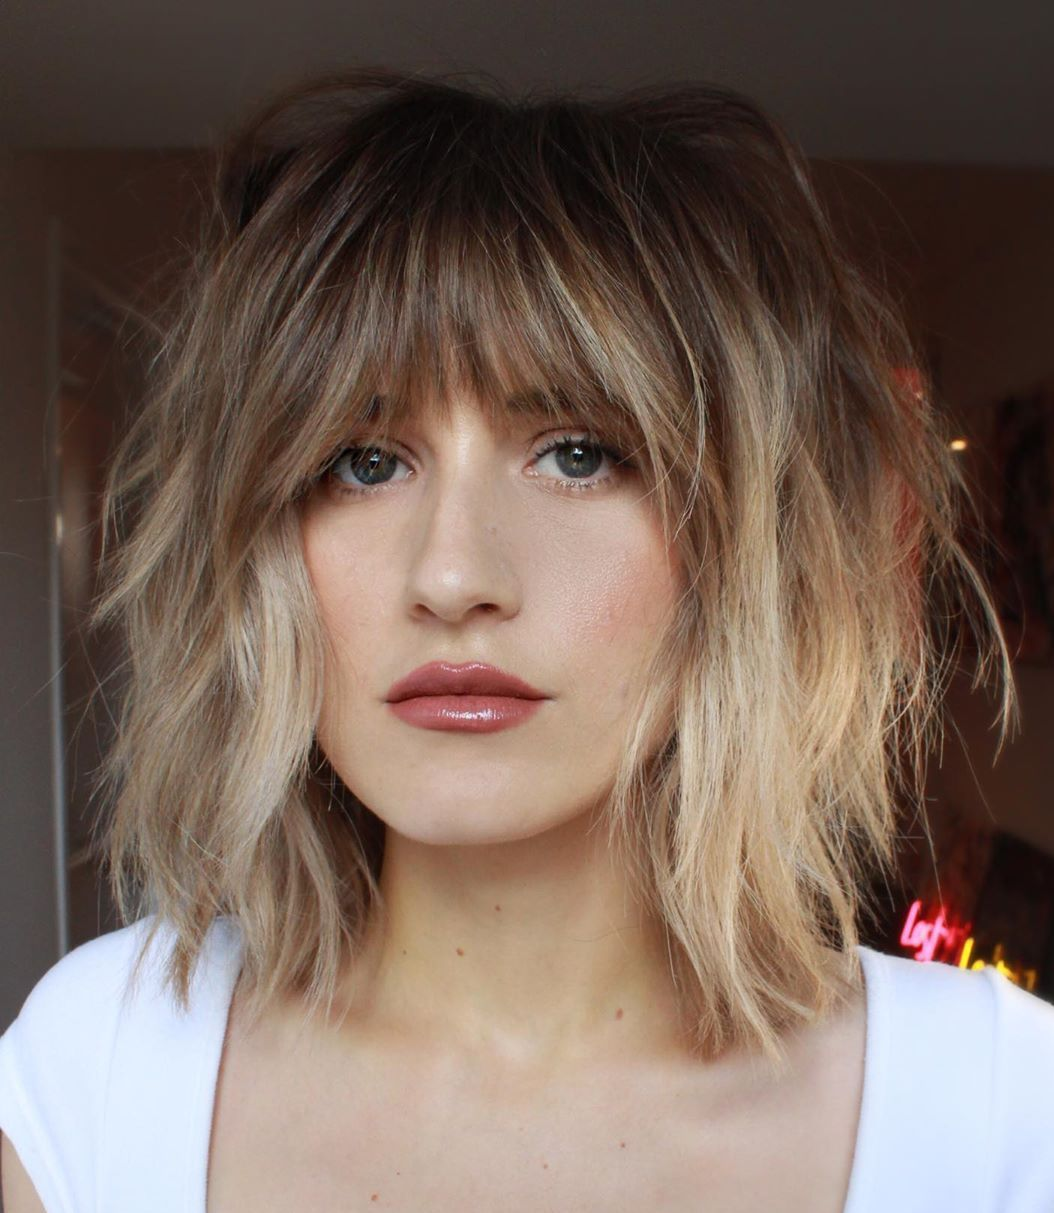 50 Most Trendy And Flattering Bangs For Round Faces In 2021 Hadviser Bangs For Round Face Short Hair Styles For Round Faces Short Hair With Bangs